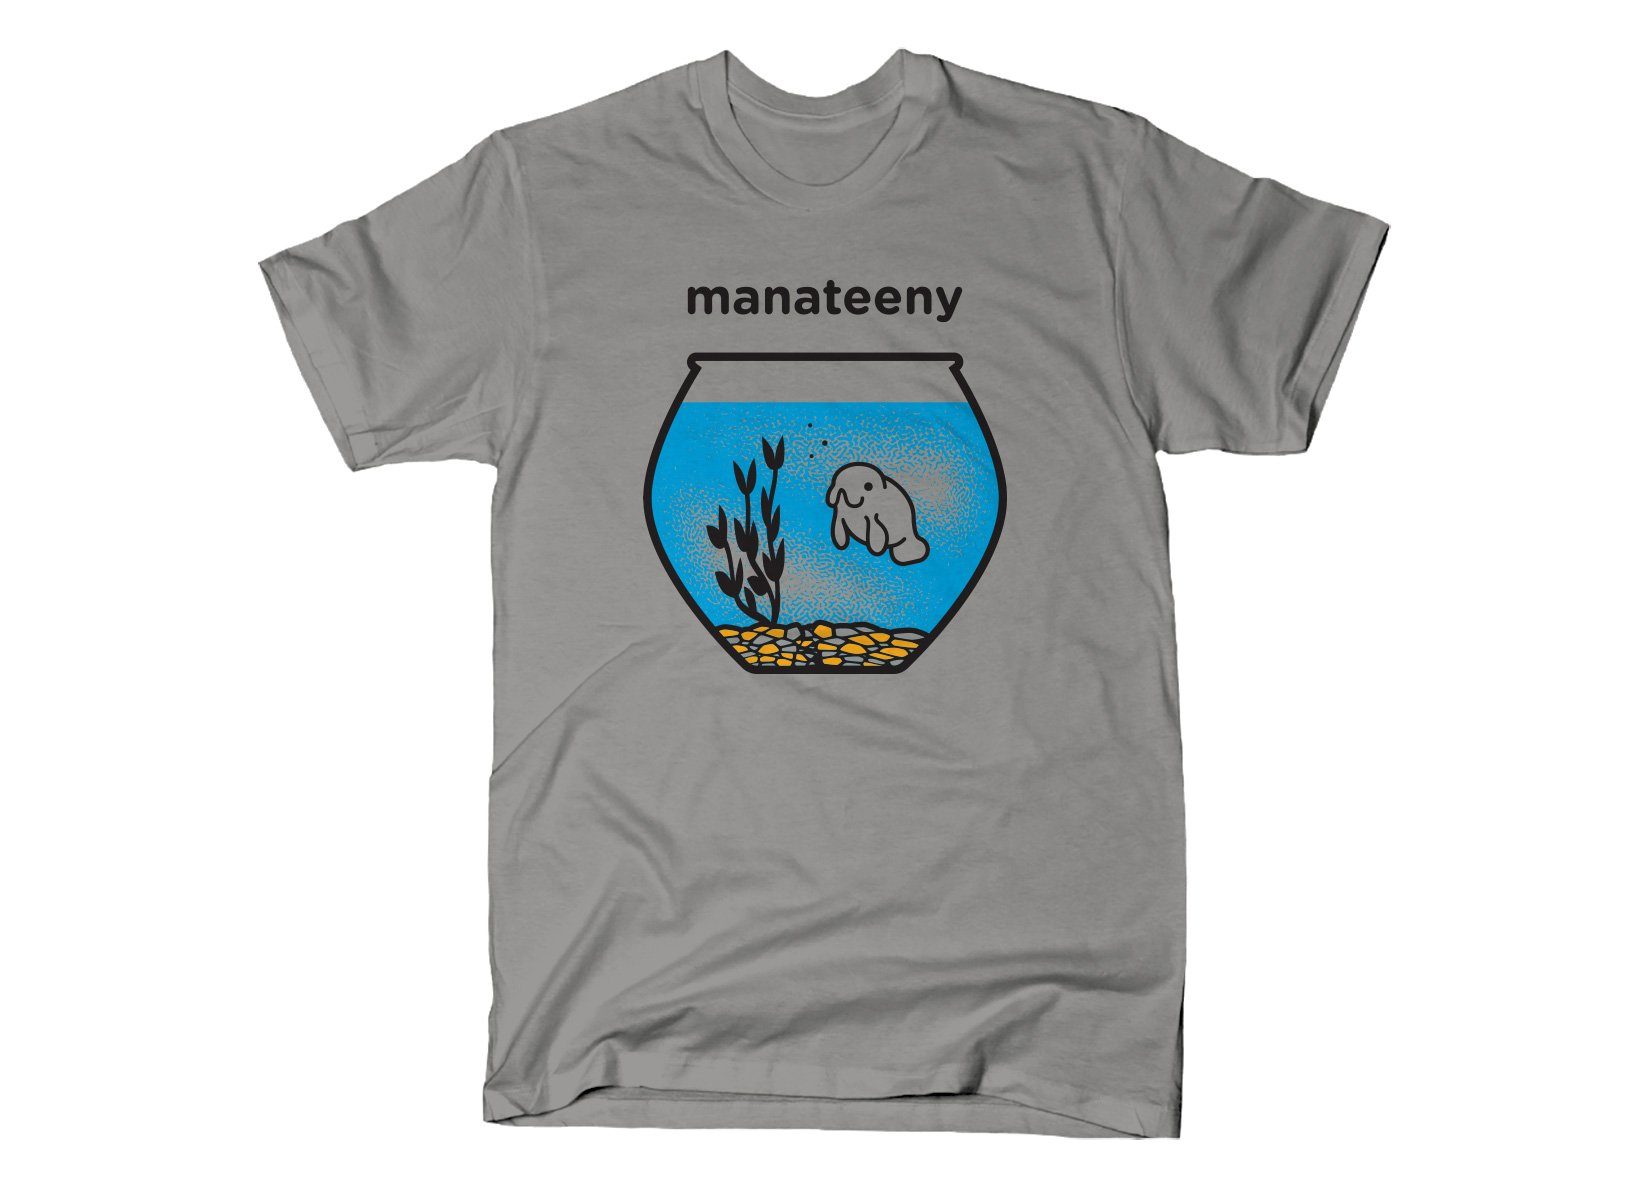 Manateeny on Mens T-Shirt